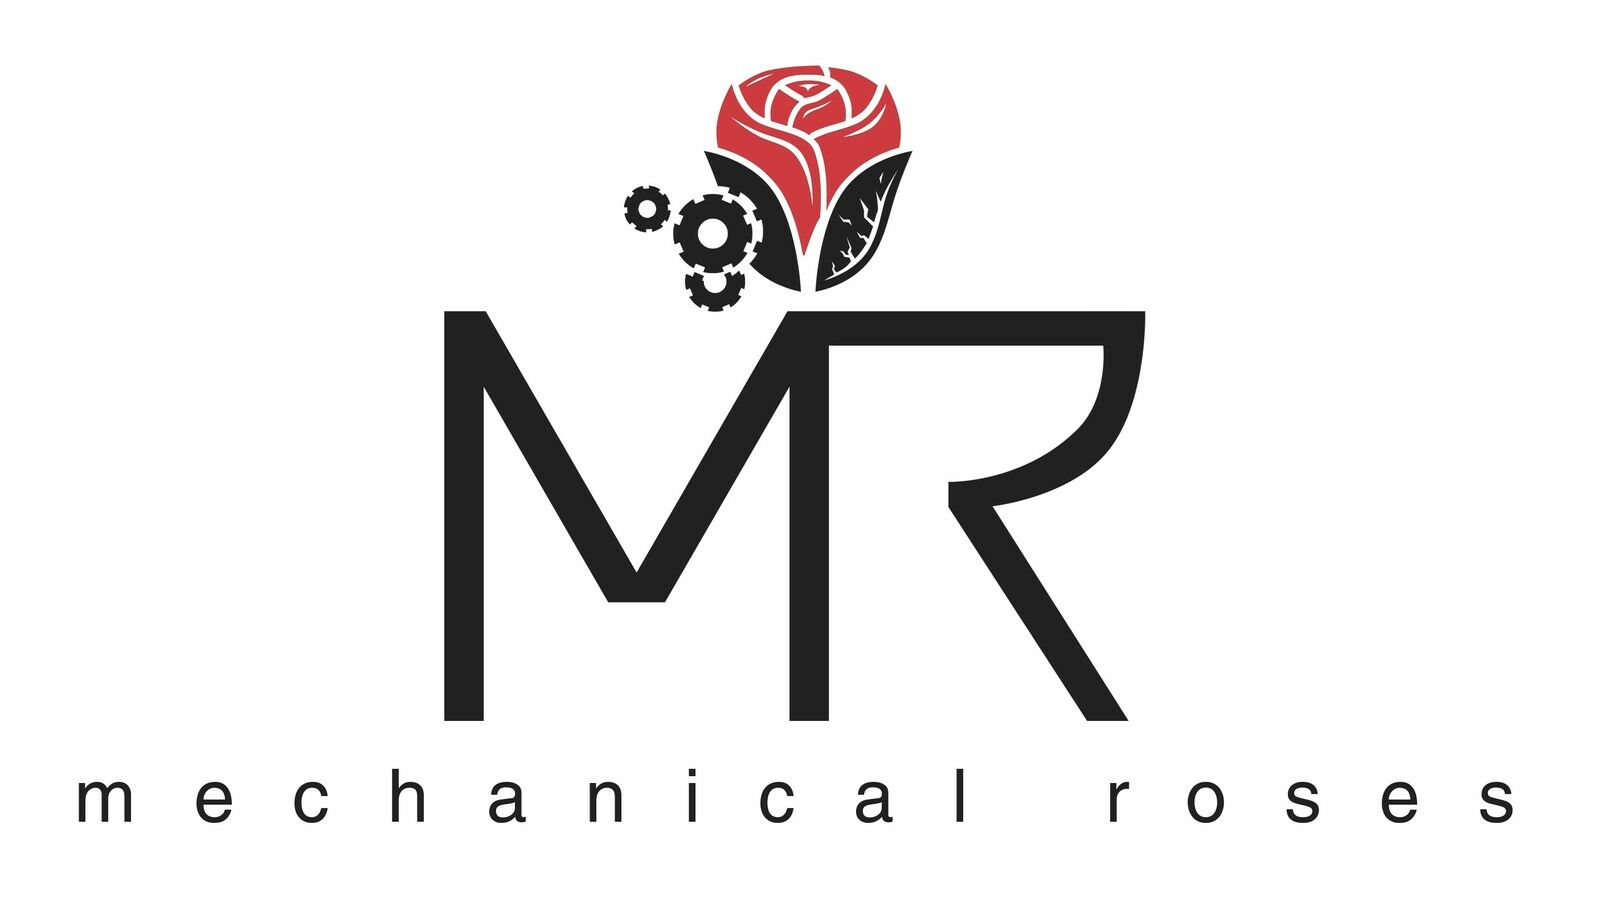 Mechanical Roses